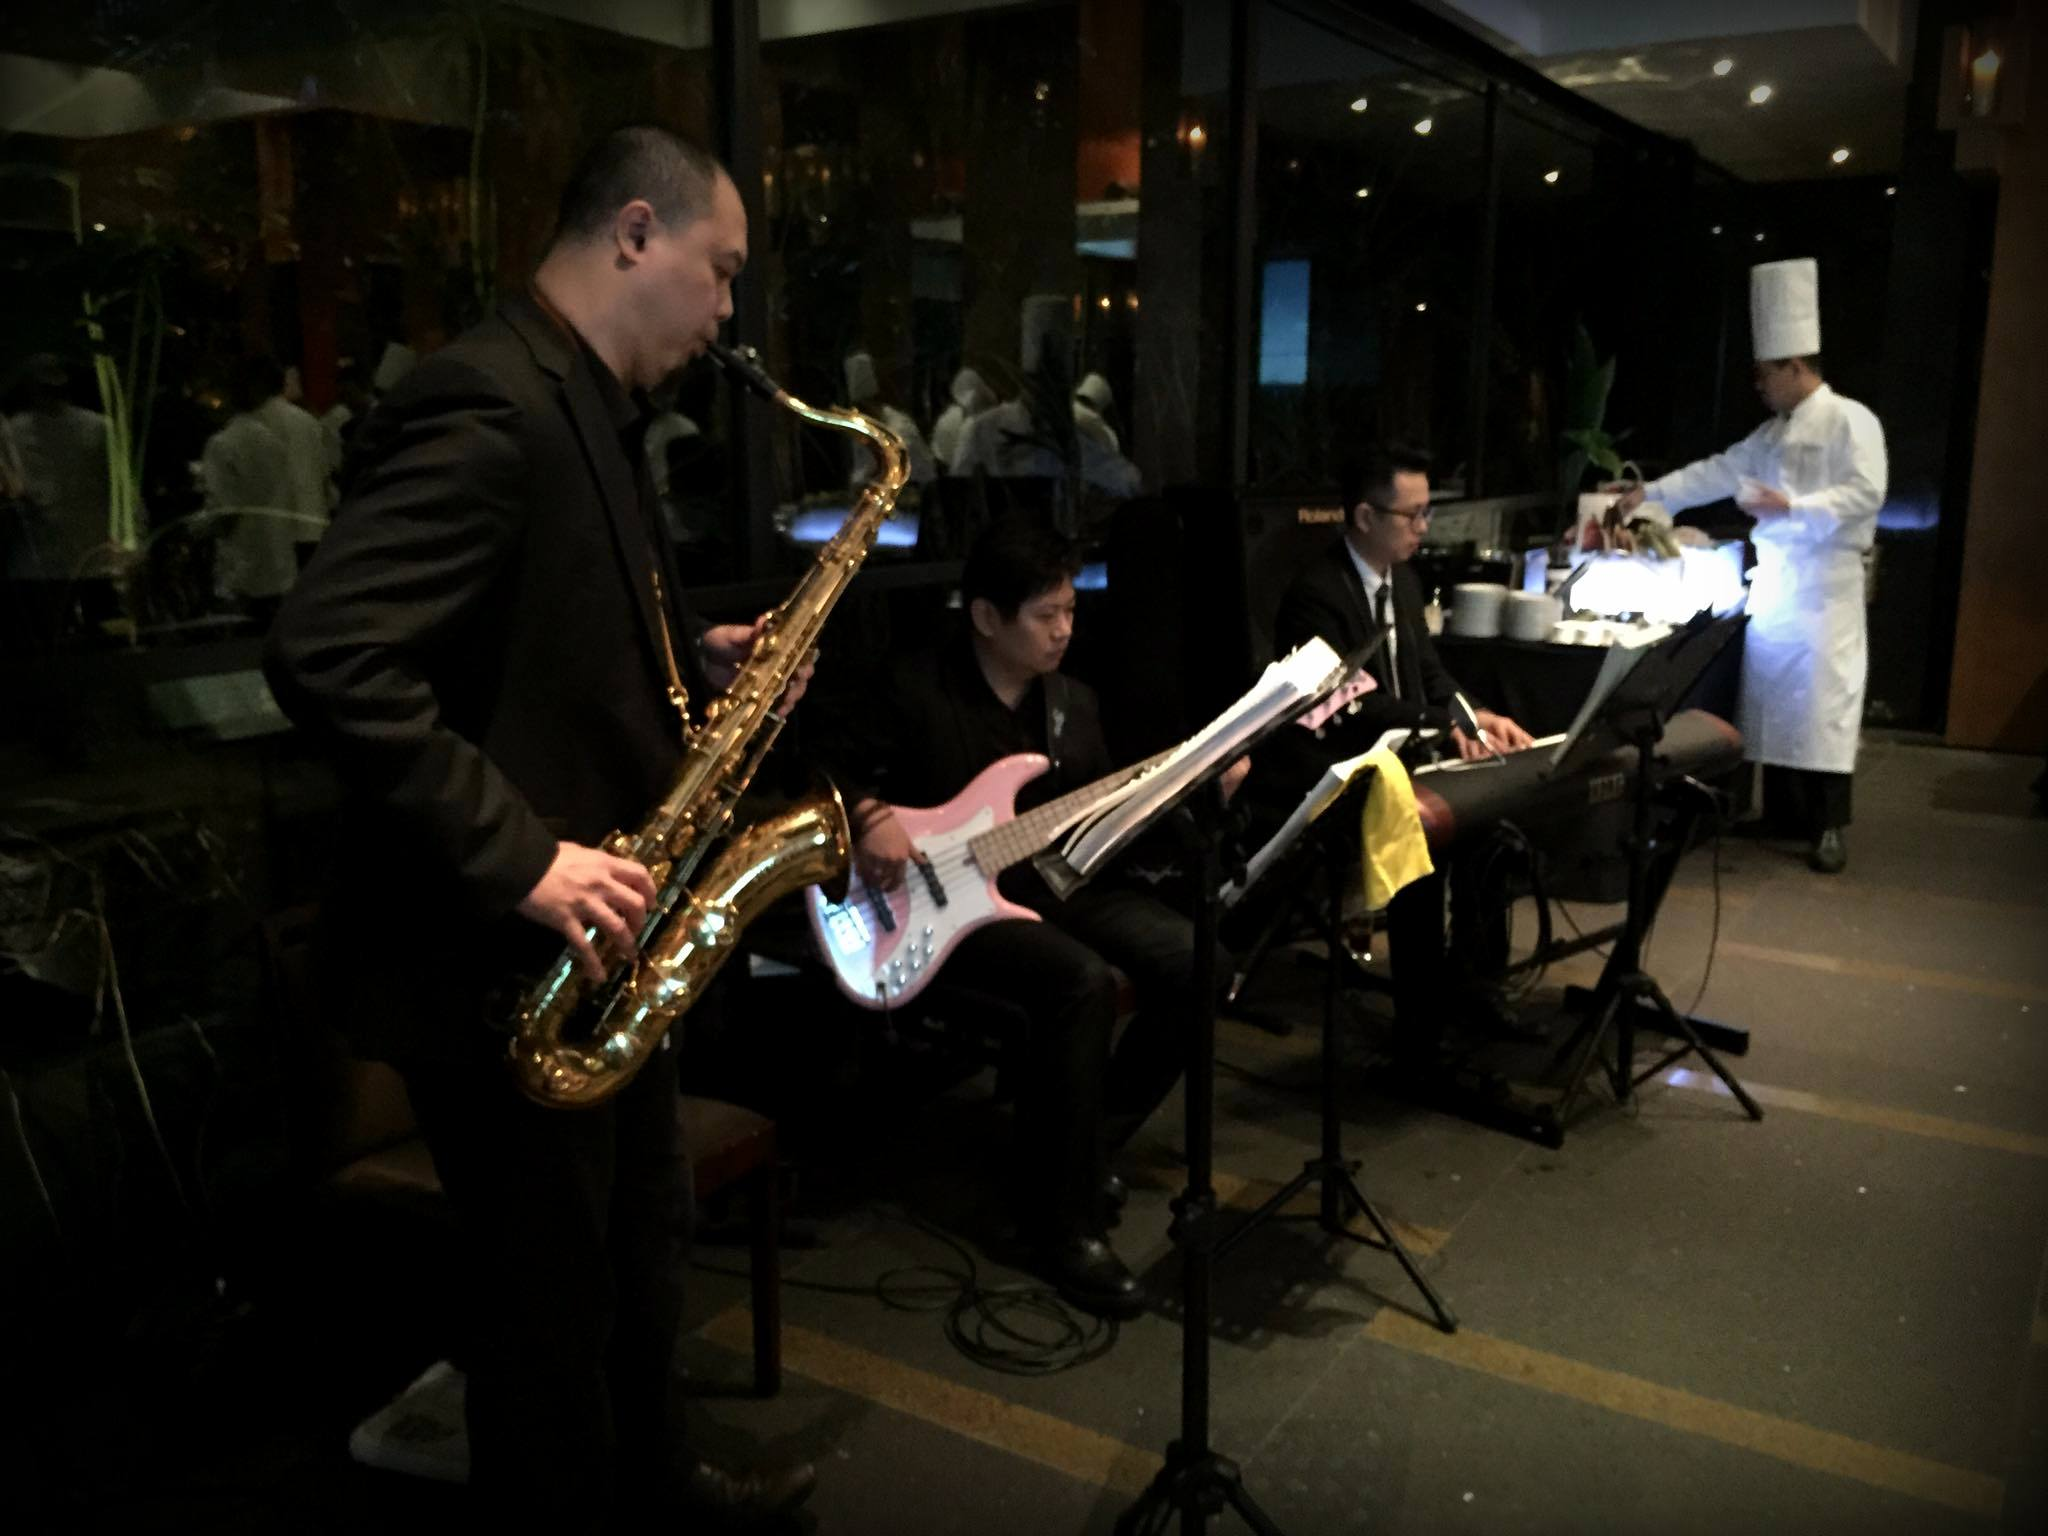 Unison Production Live Music band performance - Corporate event in Grand Hyatt Hotel, Jan2016